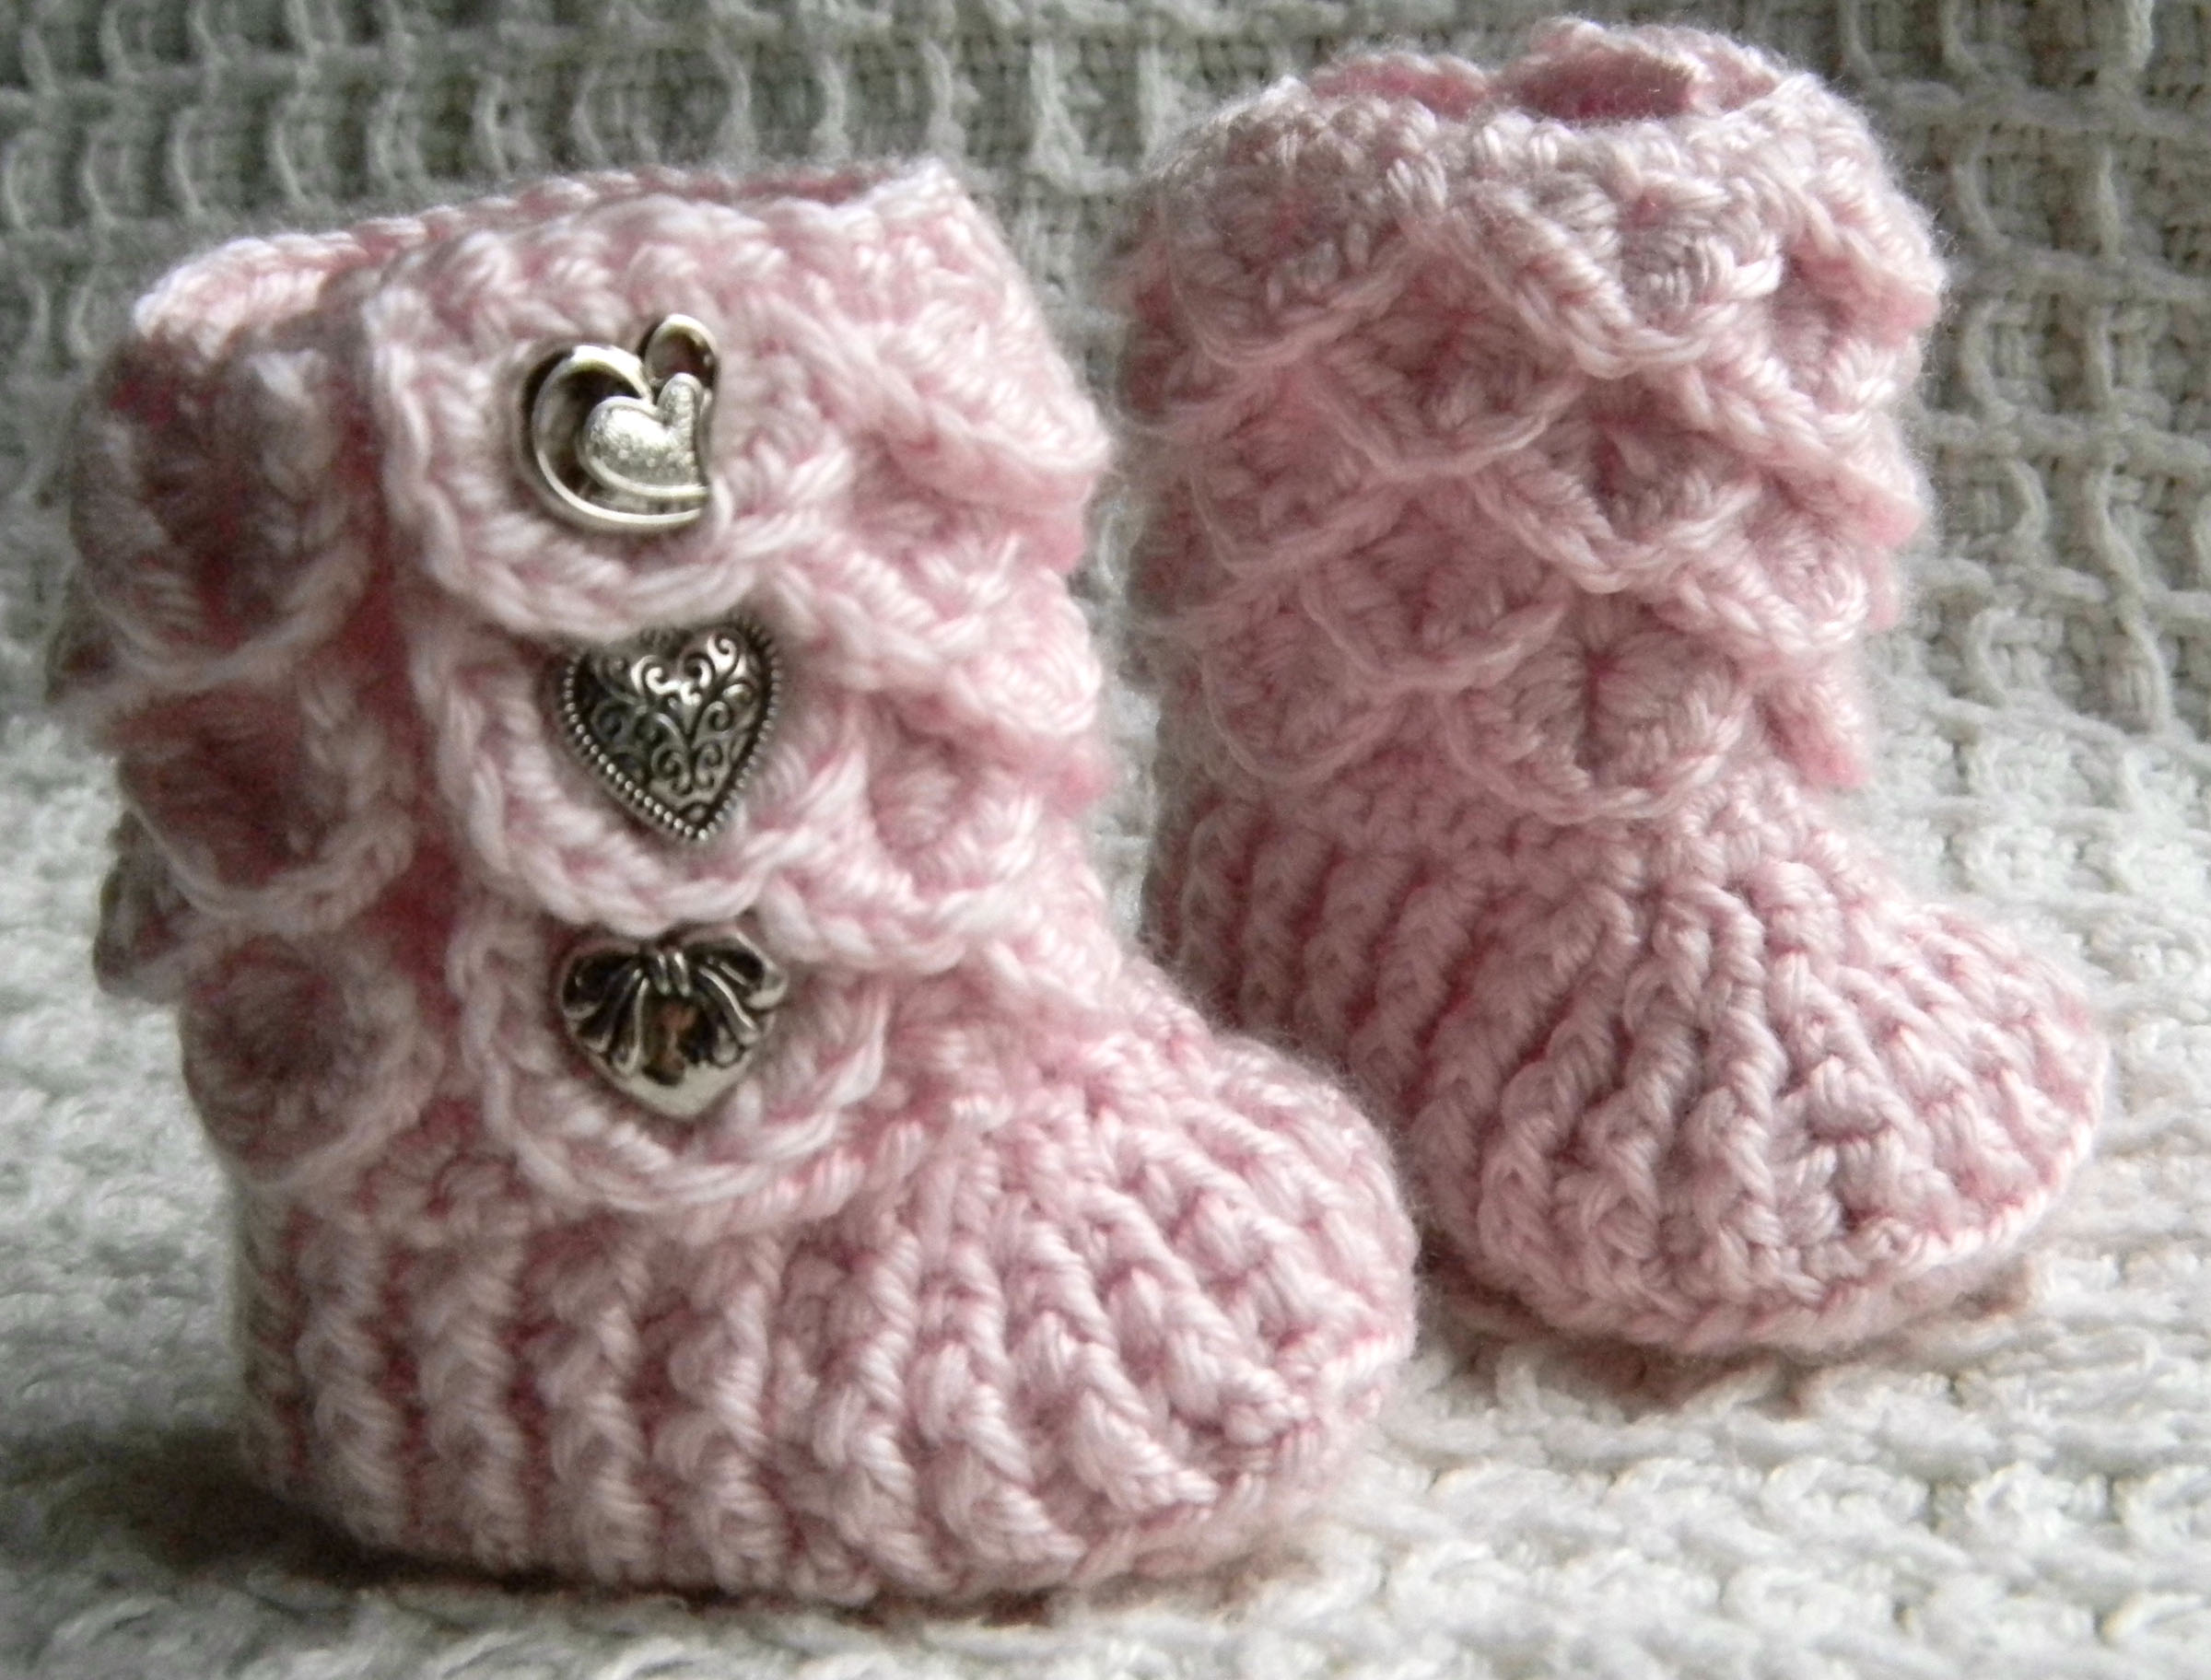 Crochet Pattern For Crocodile Stitch Baby Booties : Crochet Knit